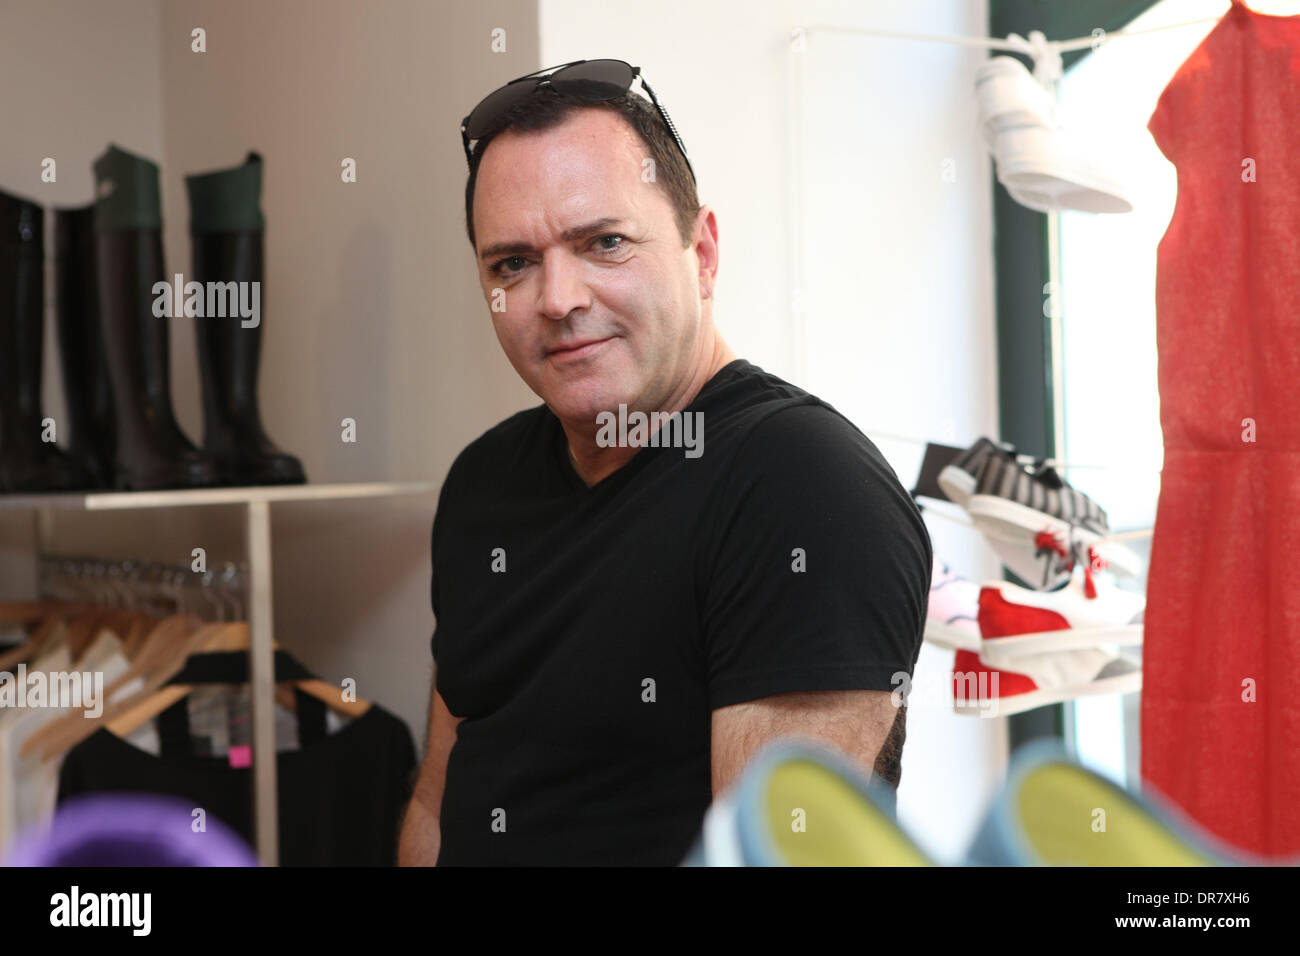 christopher ciccone visits the novesta showroom in prague ciccone